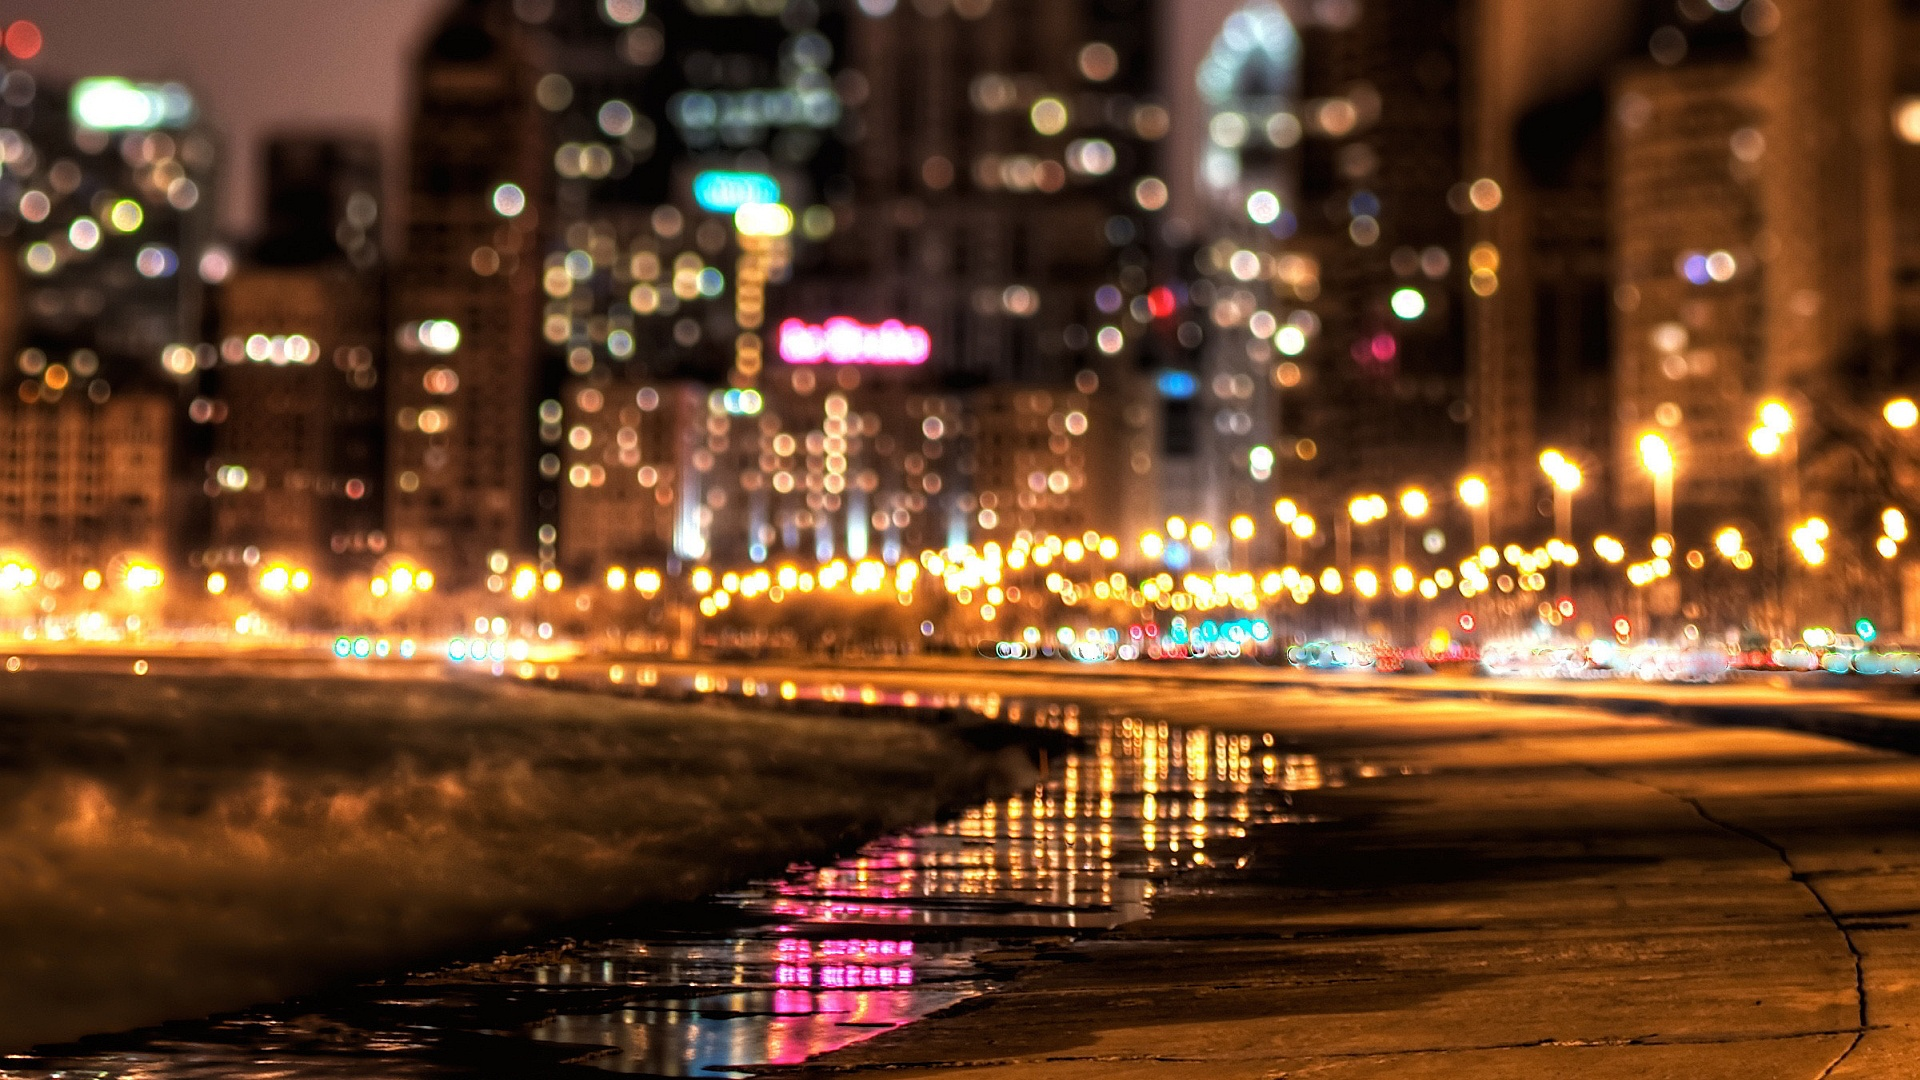 ... city-lights-wallpaper ...